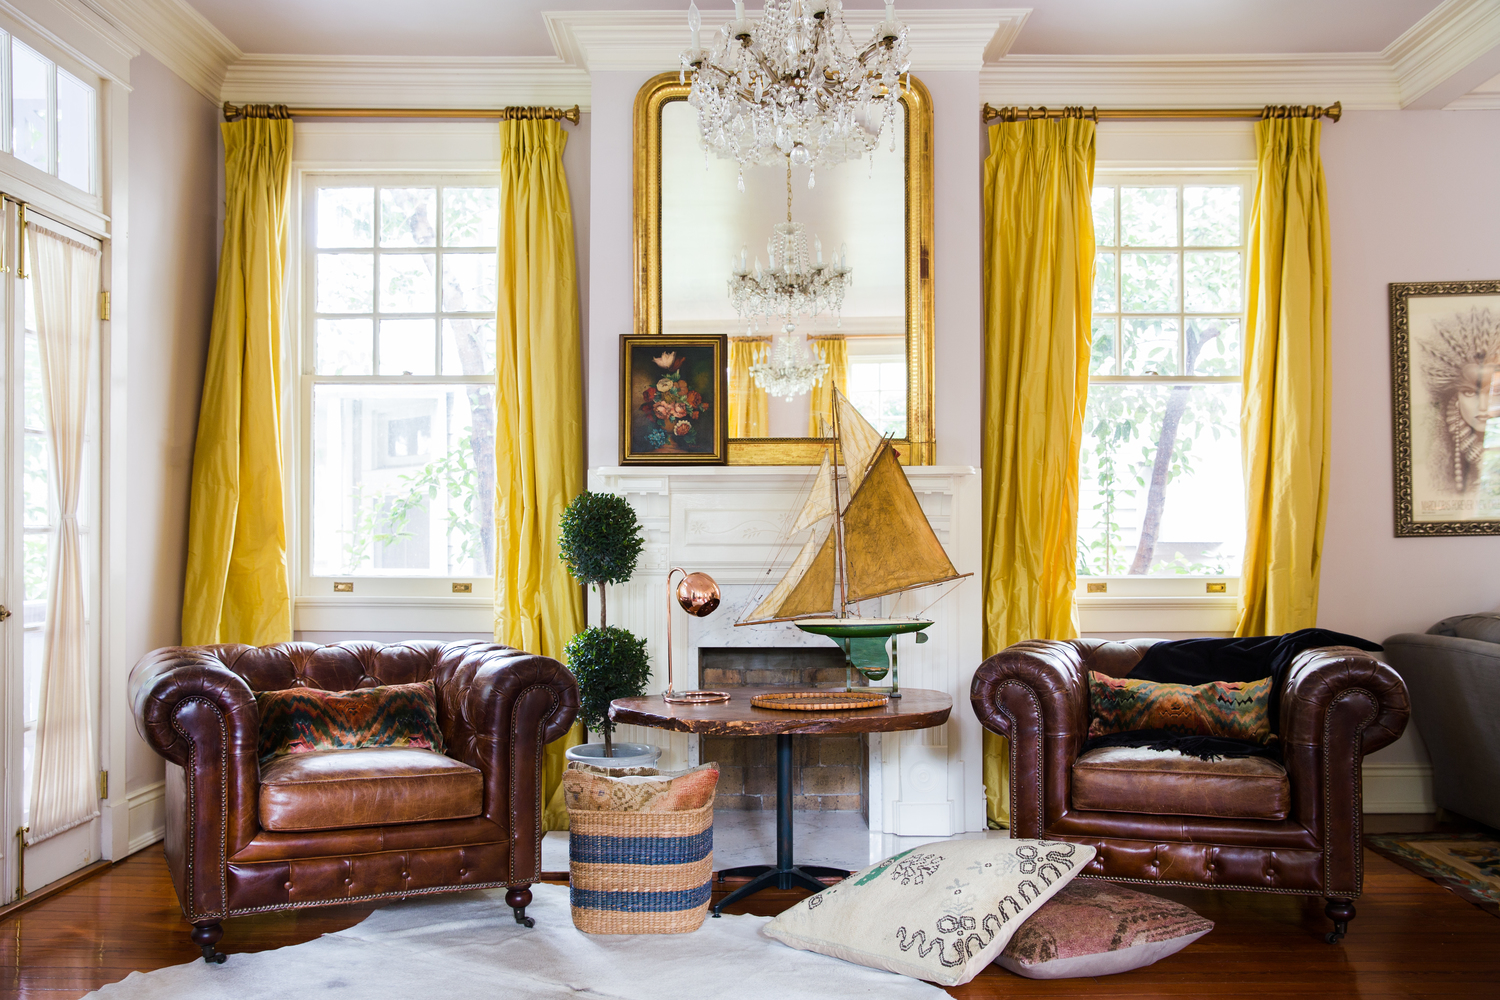 Logan Killen Interiors Is A Full Service Interior Design Team Based In New Orleans